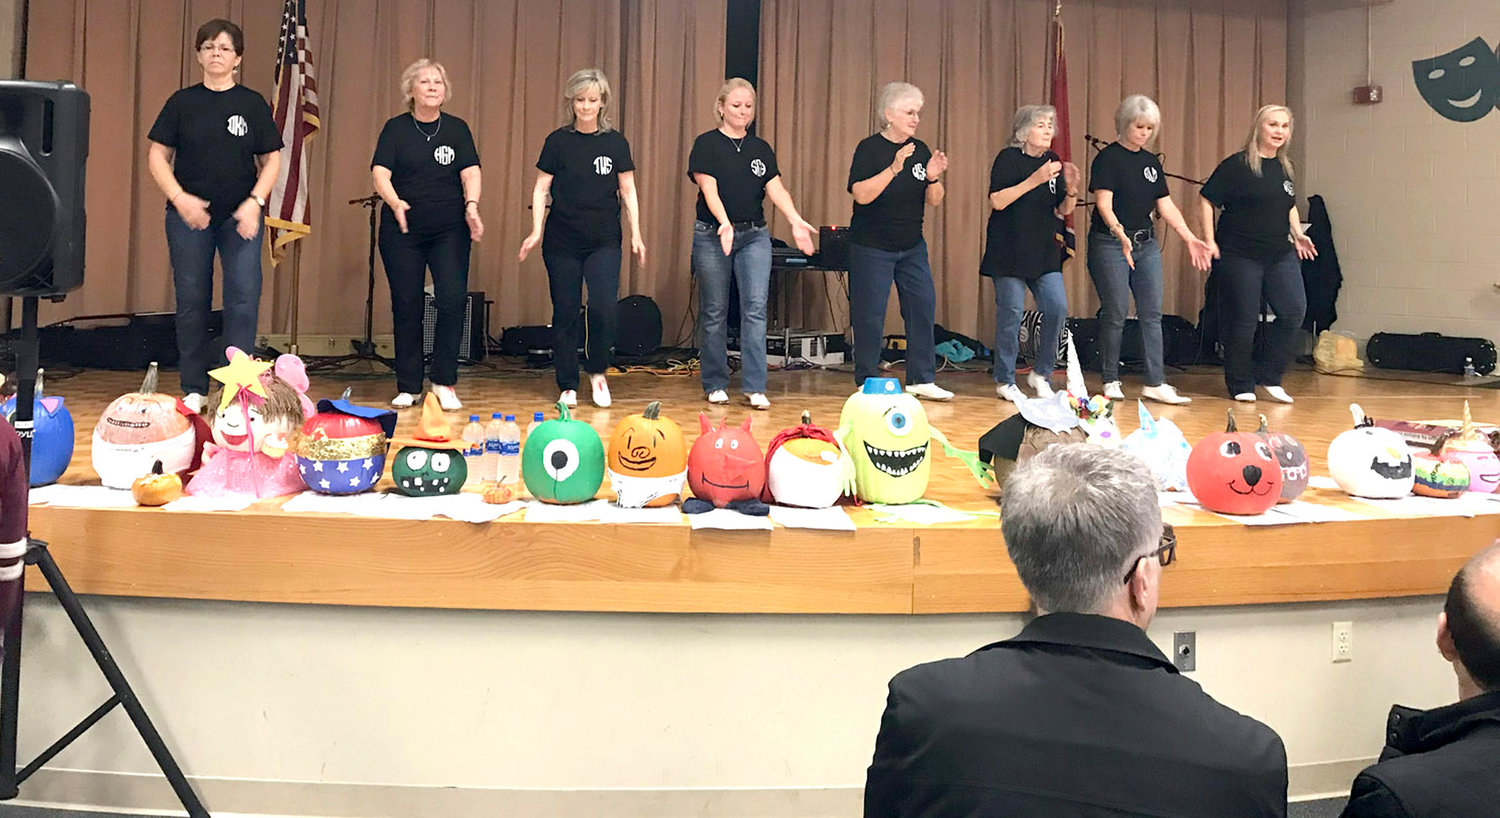 Hilda Griffin and the East Ridge Cloggers (above) provide entertainment at the 2018 Blythe-Bower Elementary Fall Harvest Hoedown. Amusing pumpkin character creations from the festival also adorned the stage. (Below) Cannon Creek Bluegrass Band performs some songs at the event.